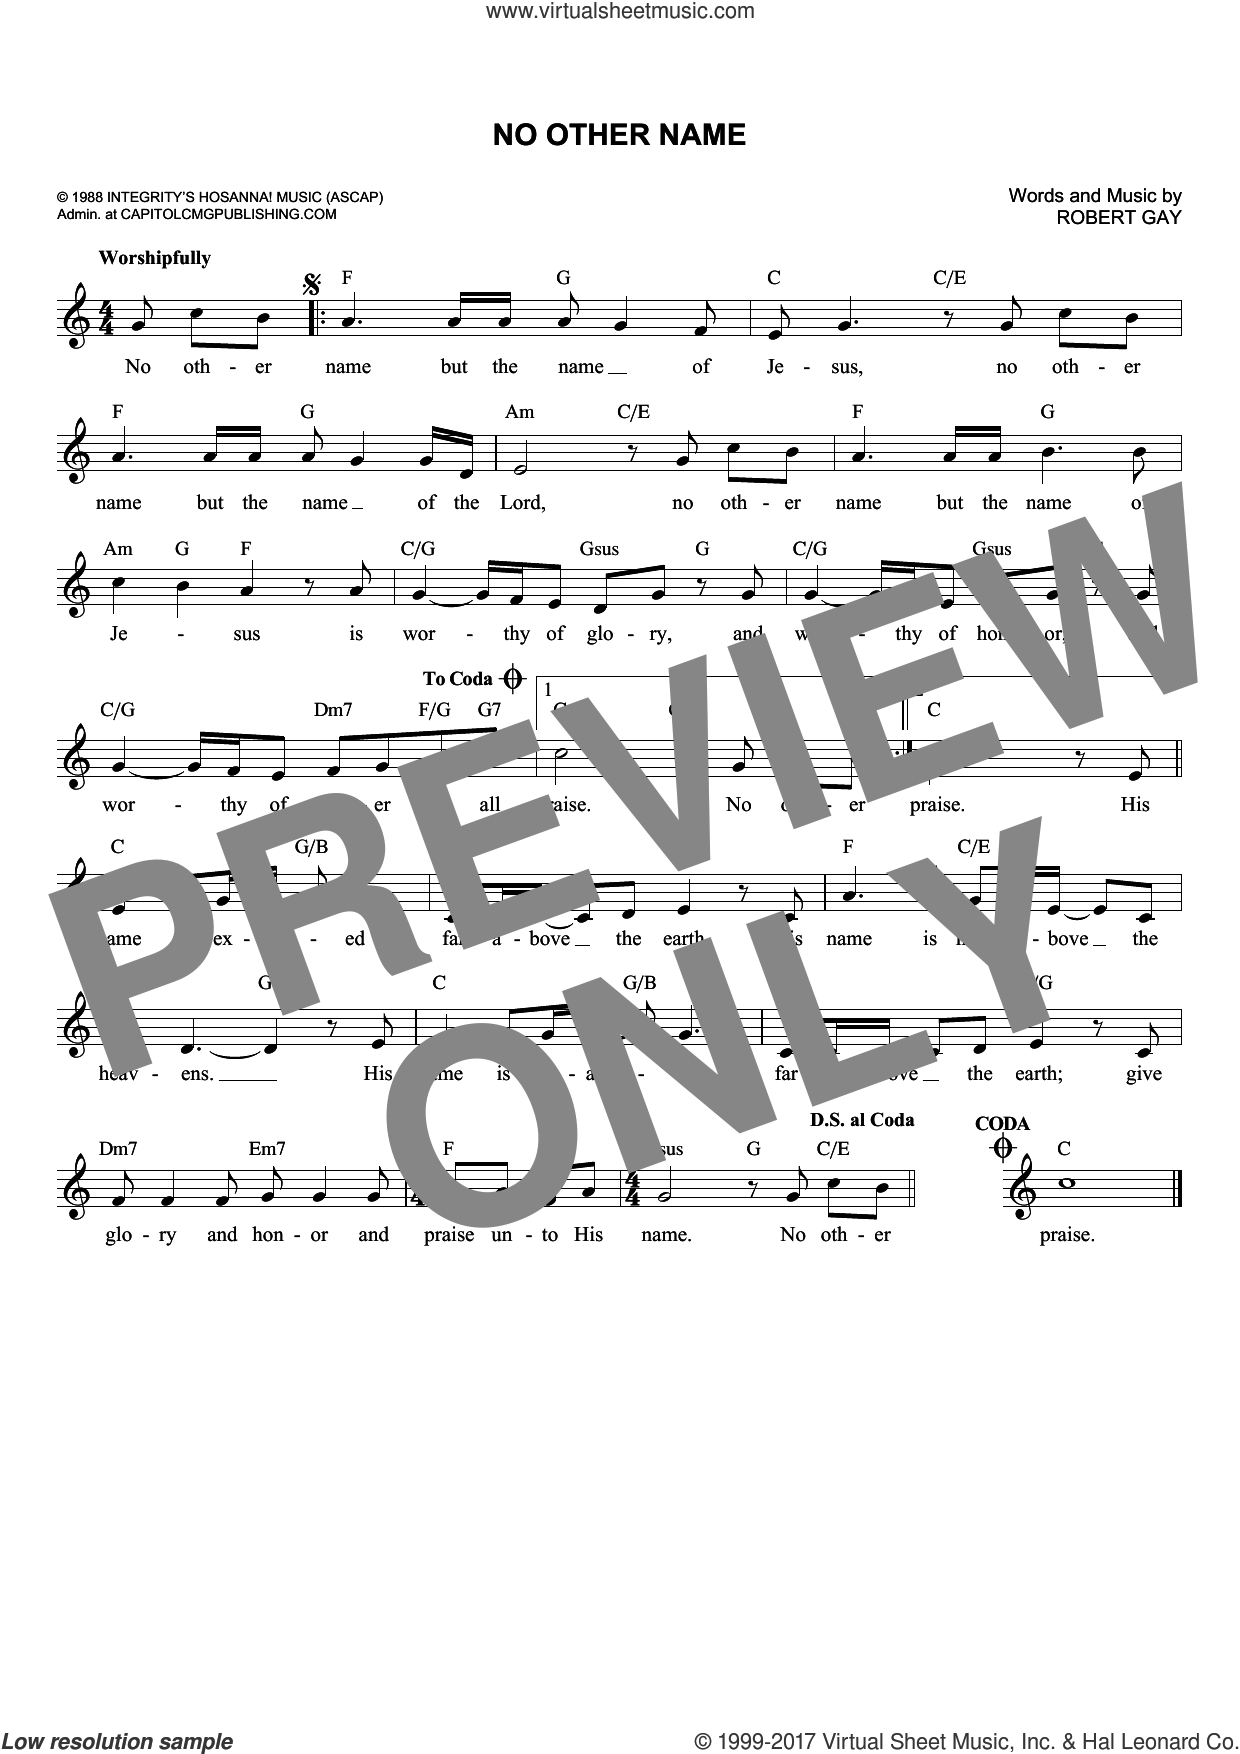 No Other Name sheet music for voice and other instruments (fake book) by Robert Gay, intermediate skill level